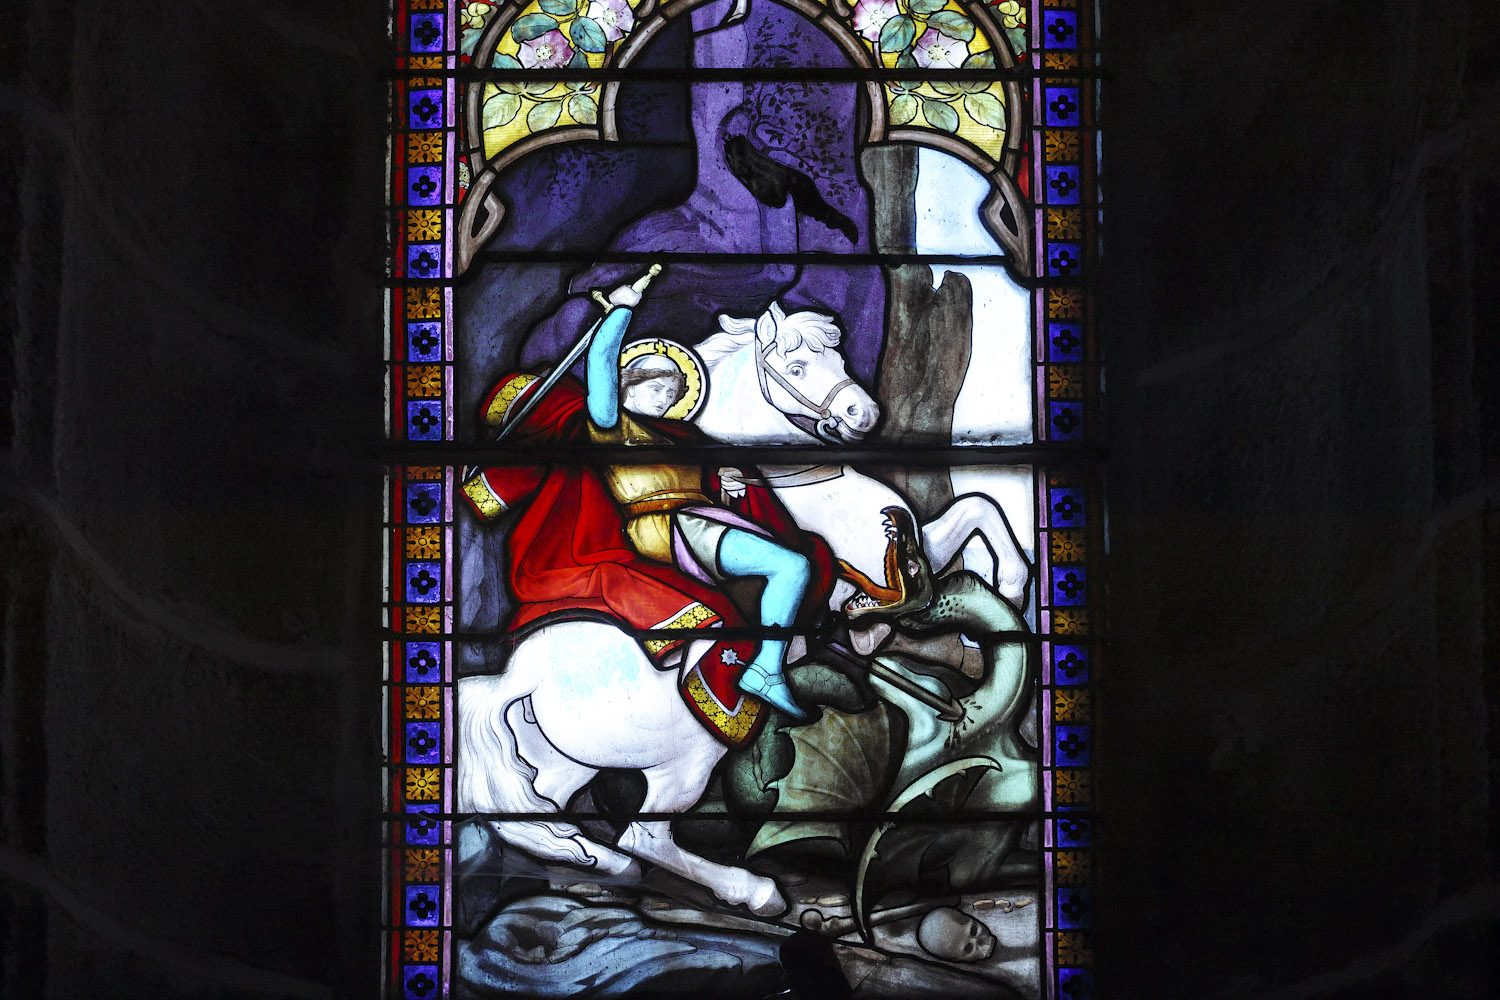 stained_glass_windows_cantal_france_finland_thevoyageur009